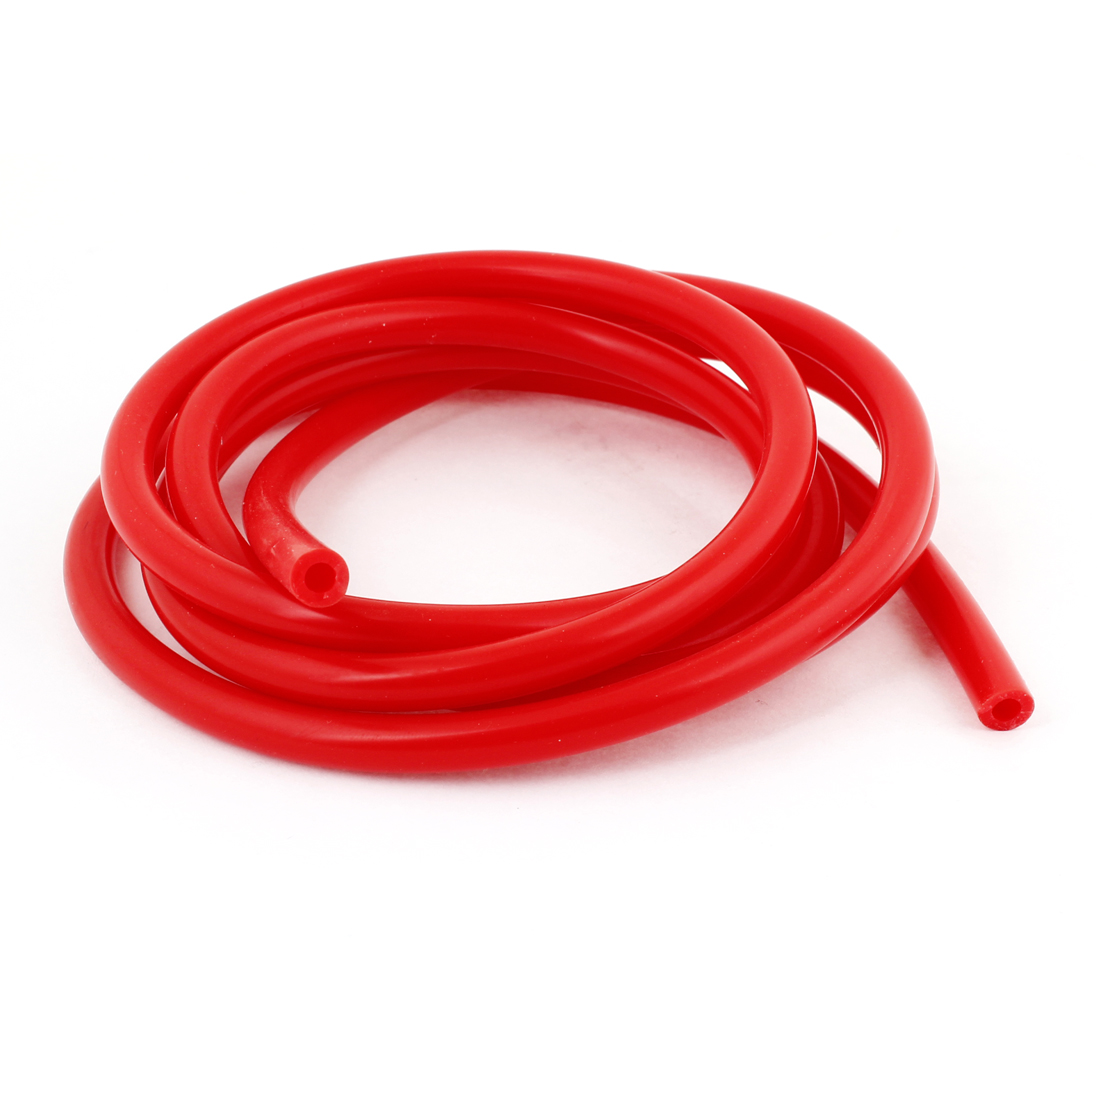 2M Long 4mm Inner Dia 8mm OD Red Silicone Vehicle Car Vacuum Hose Tubing Pipe